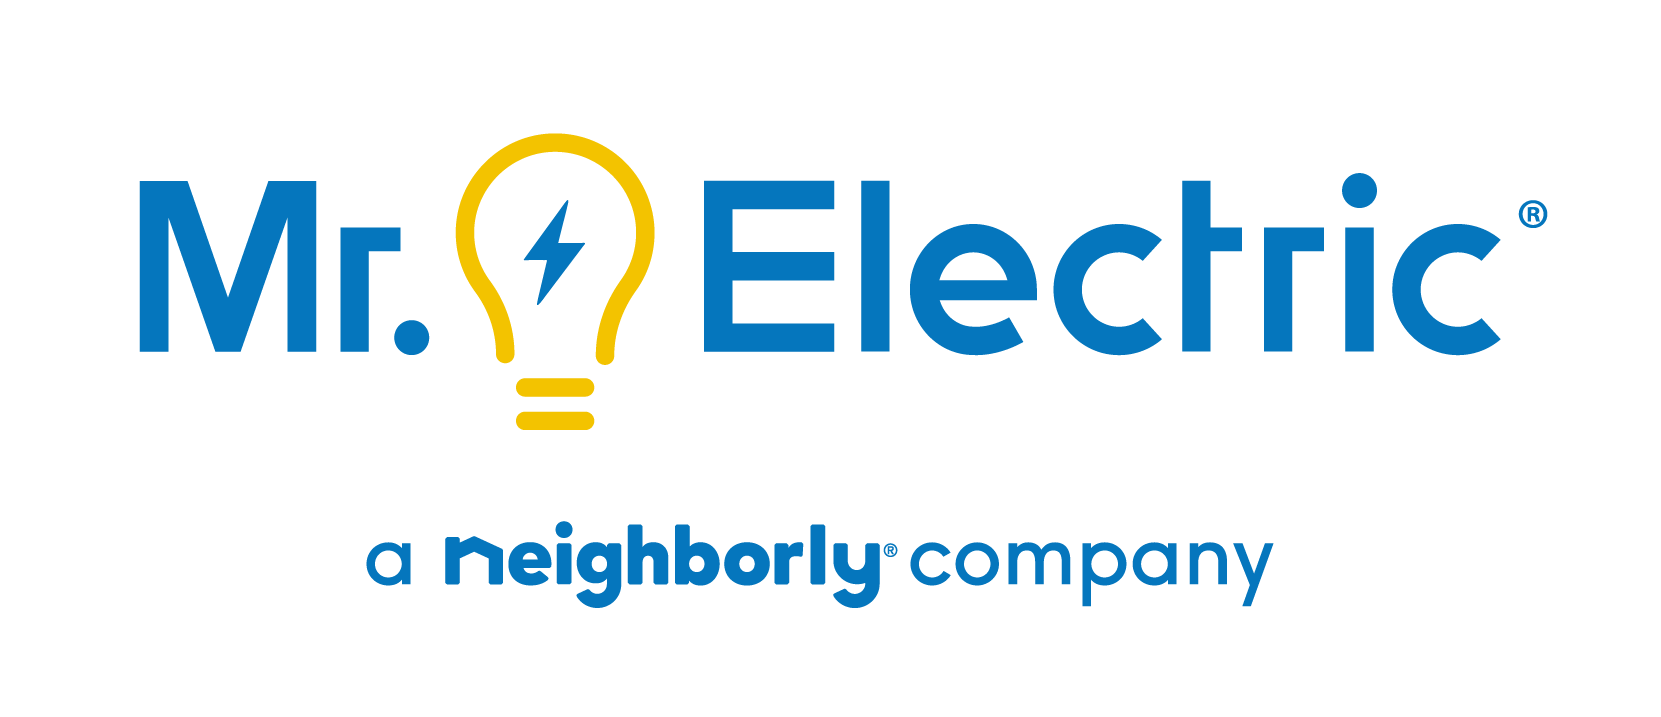 Mr. Electric of Kettering